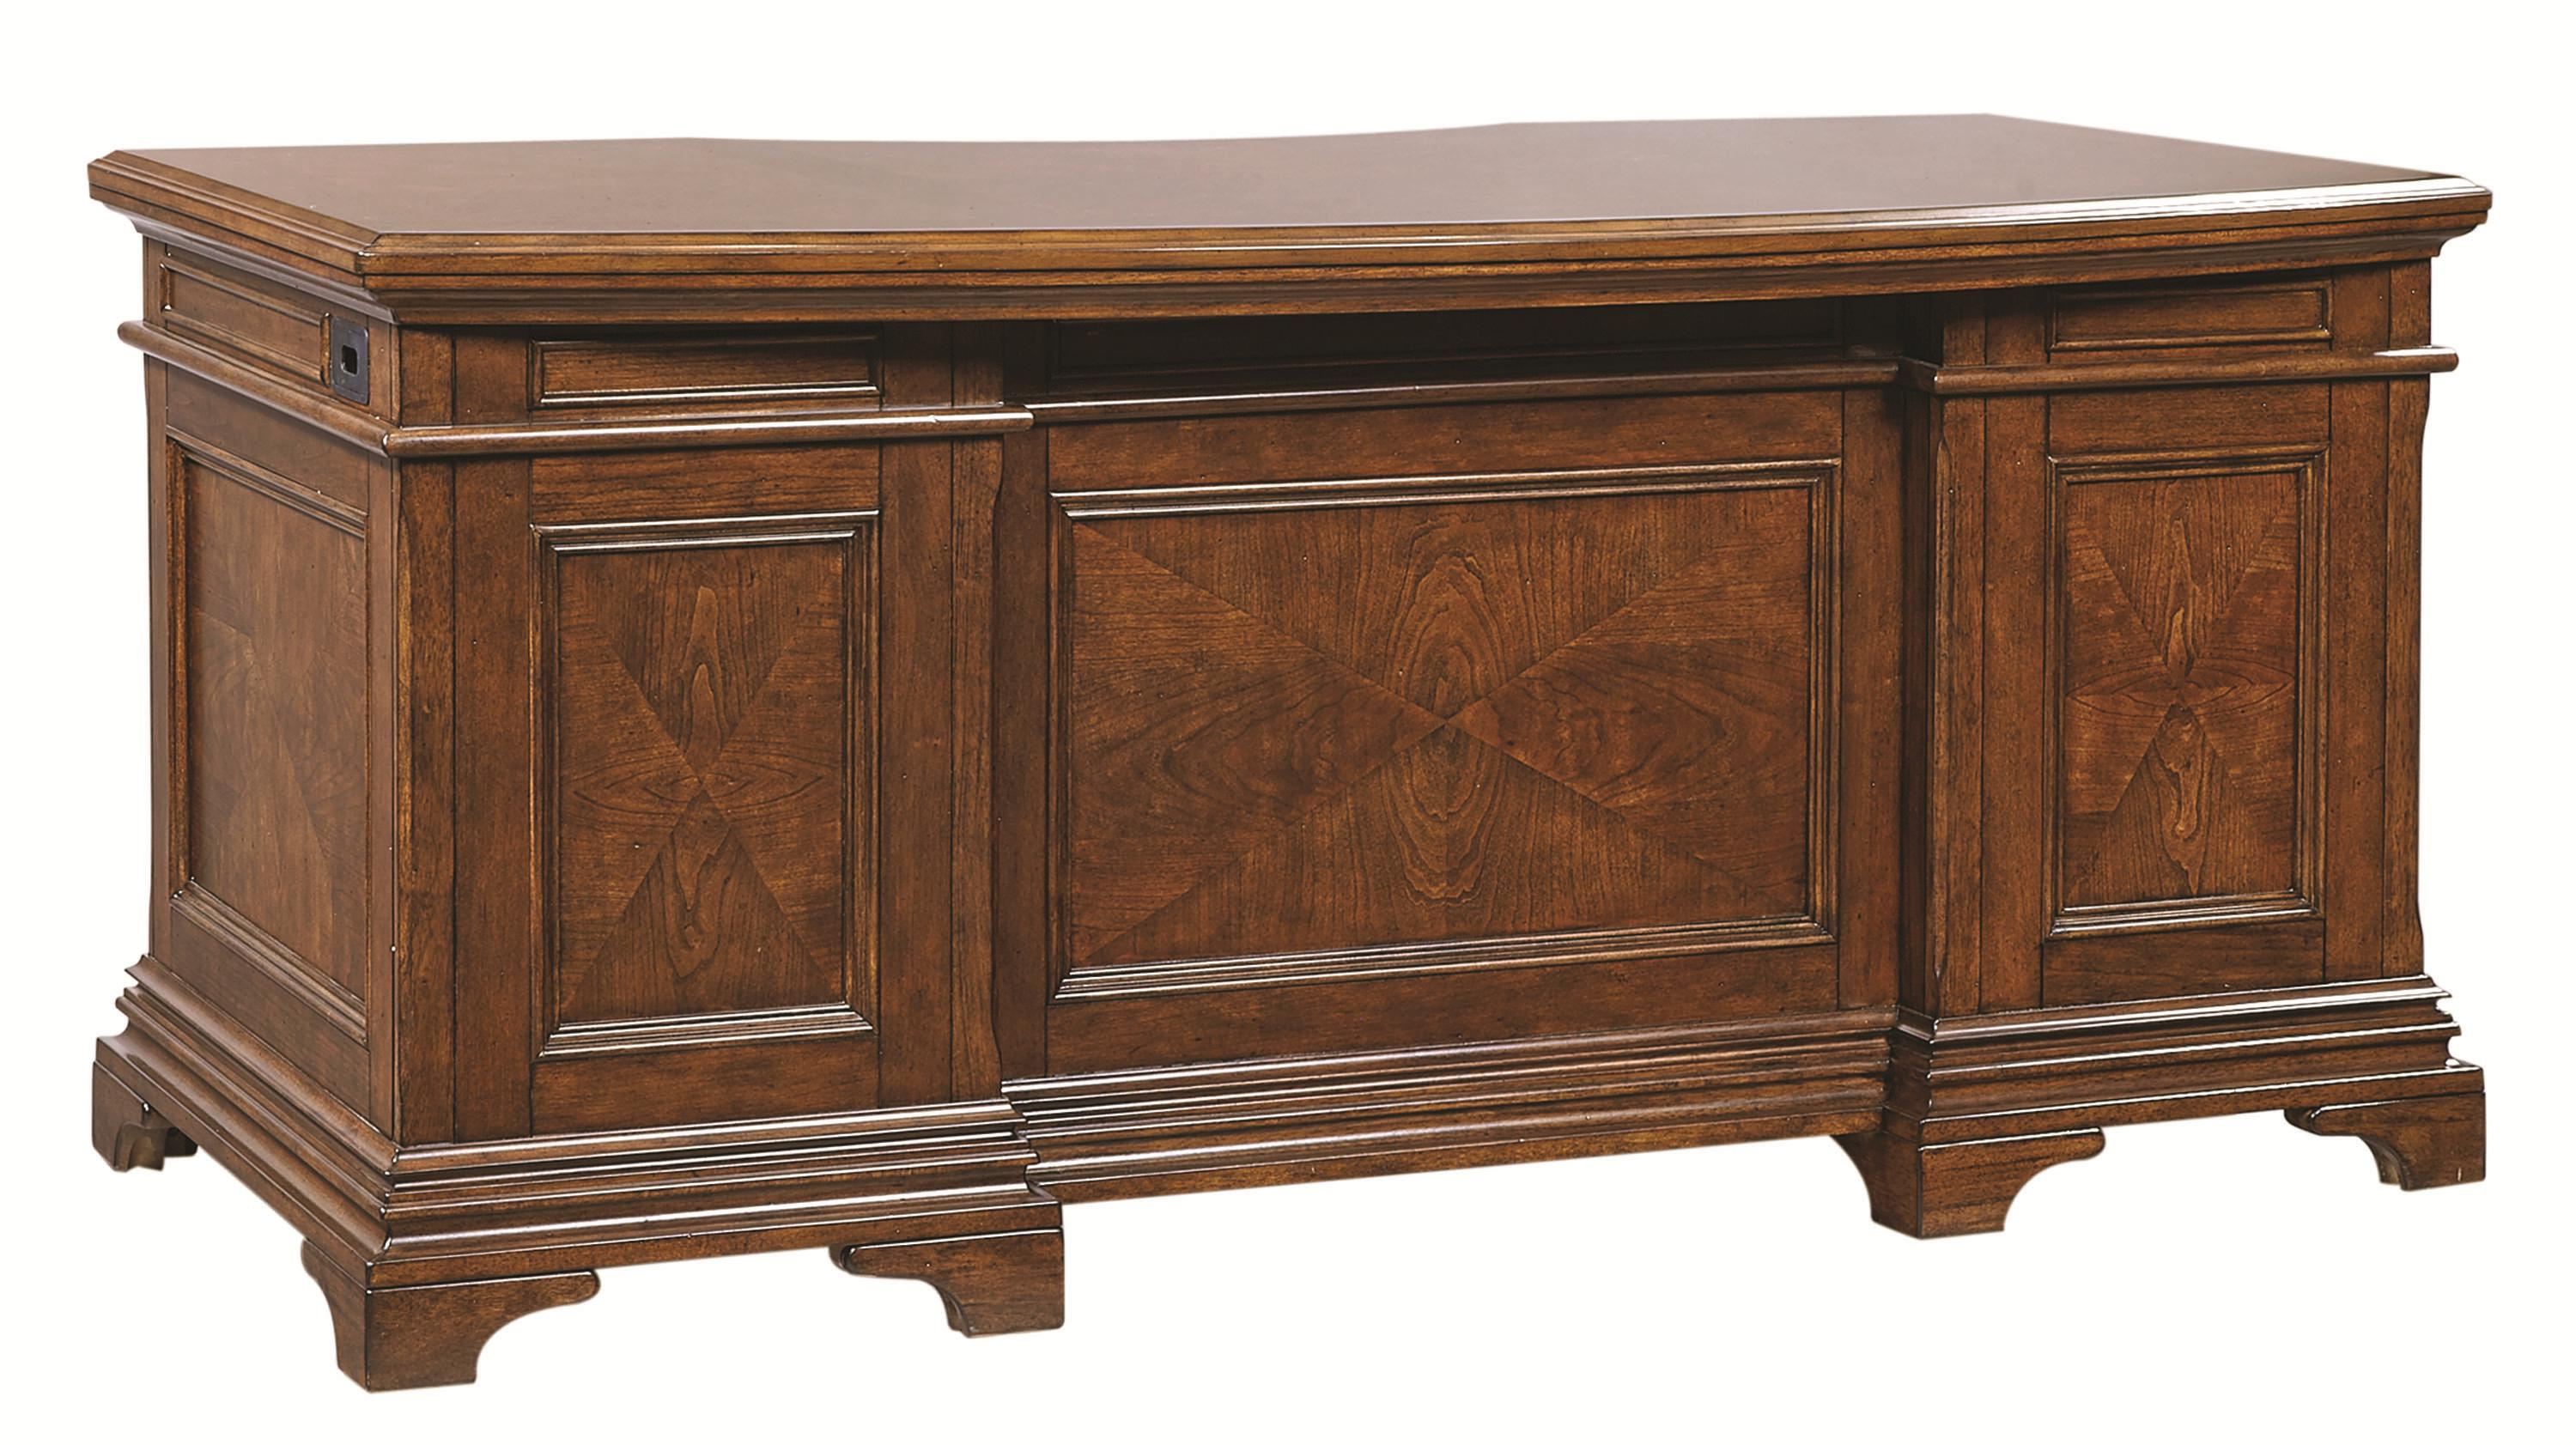 Hawthorne Curved-Top Exec Desk by Aspenhome at Baer's Furniture